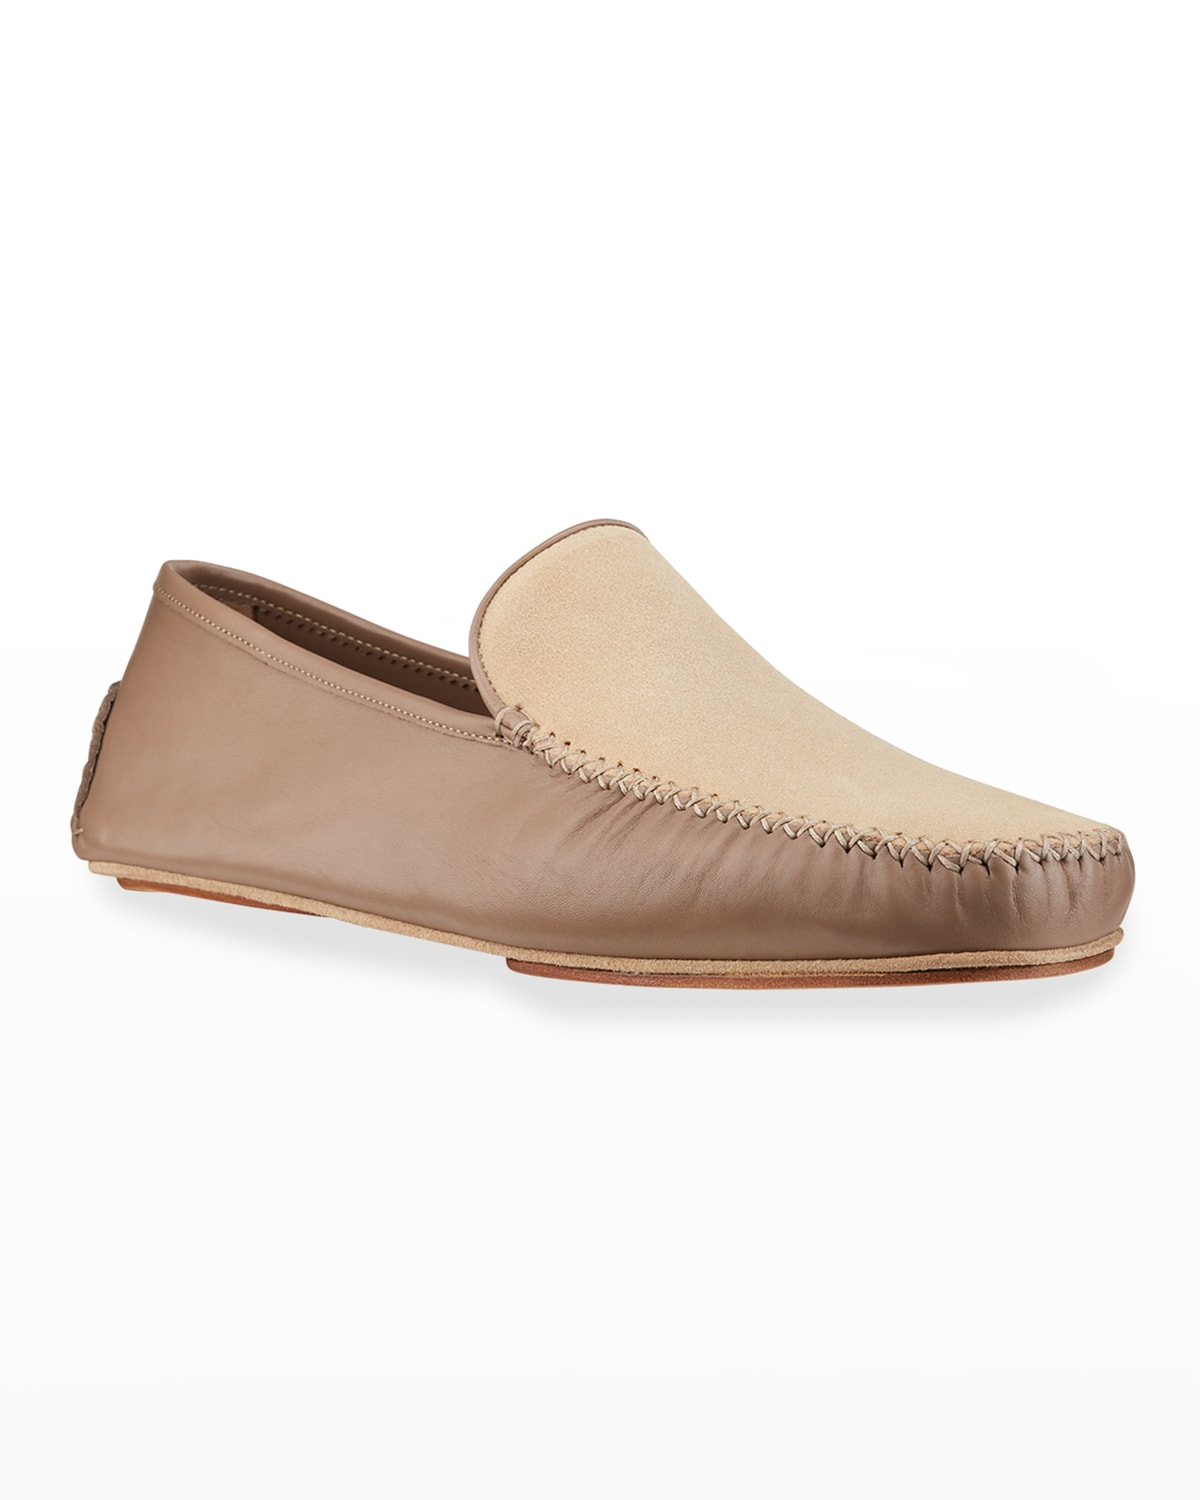 Men's Mayfair Suede and Leather Slippers